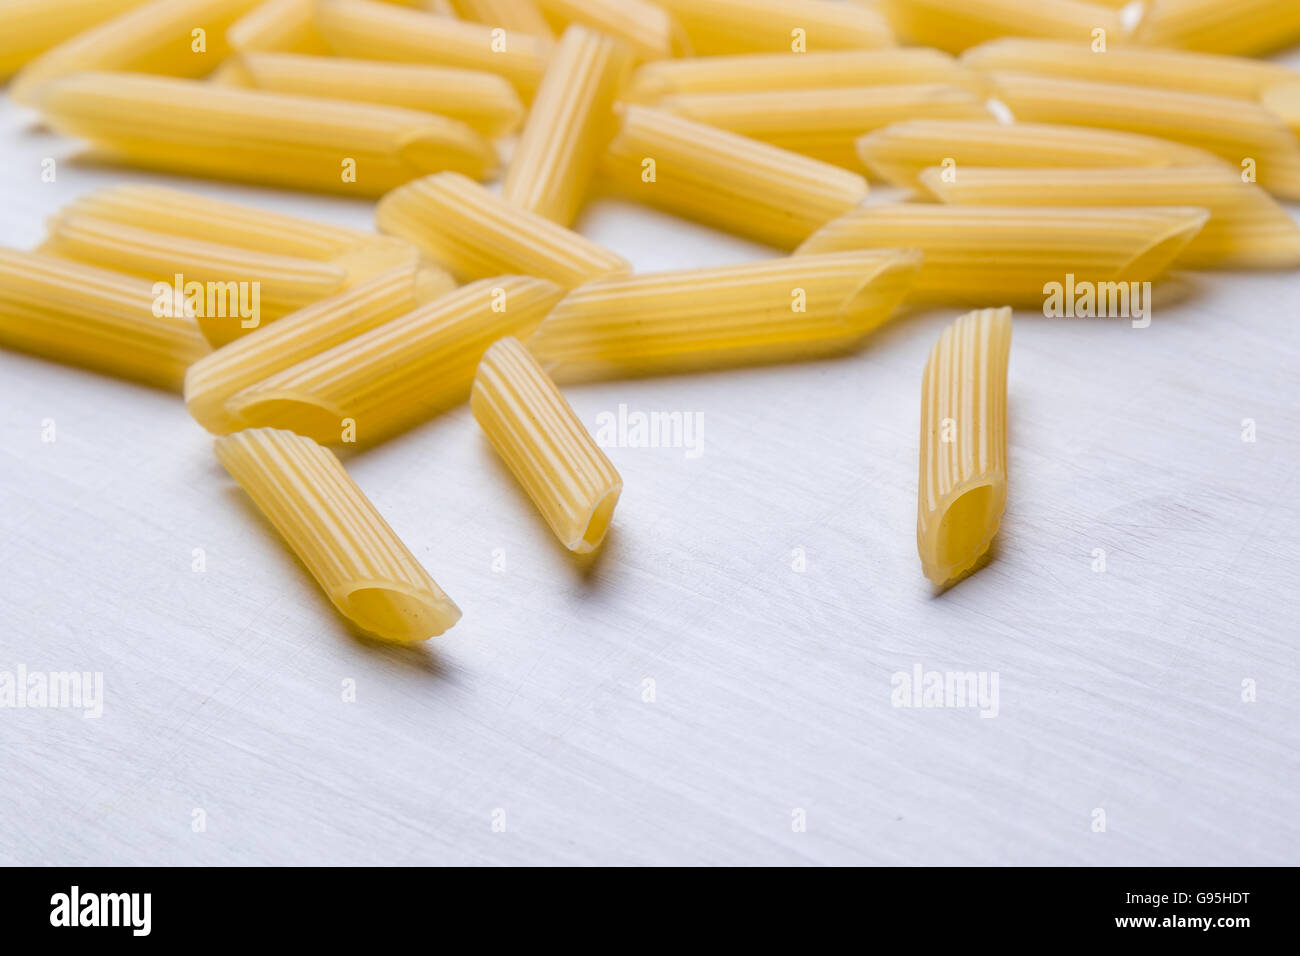 raw uncooked penne pasta on white table - Stock Image